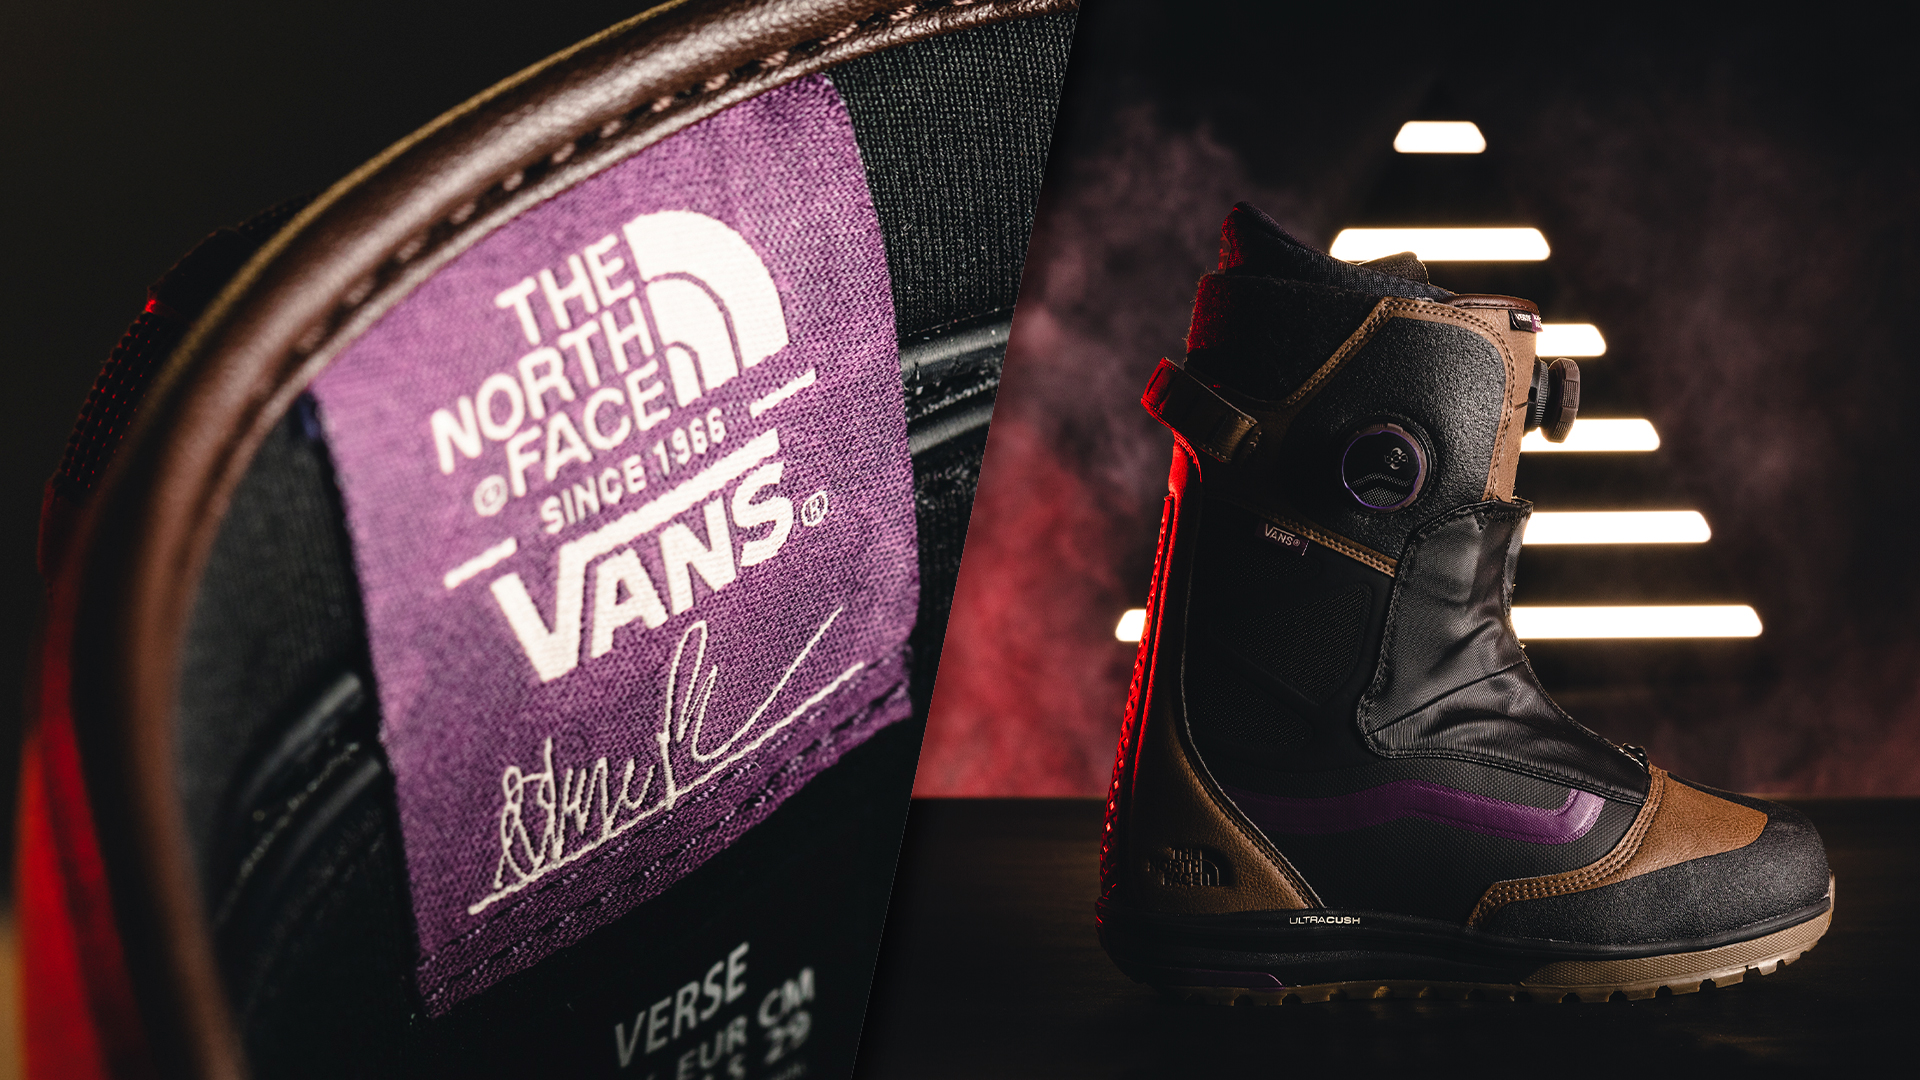 vans north face boots